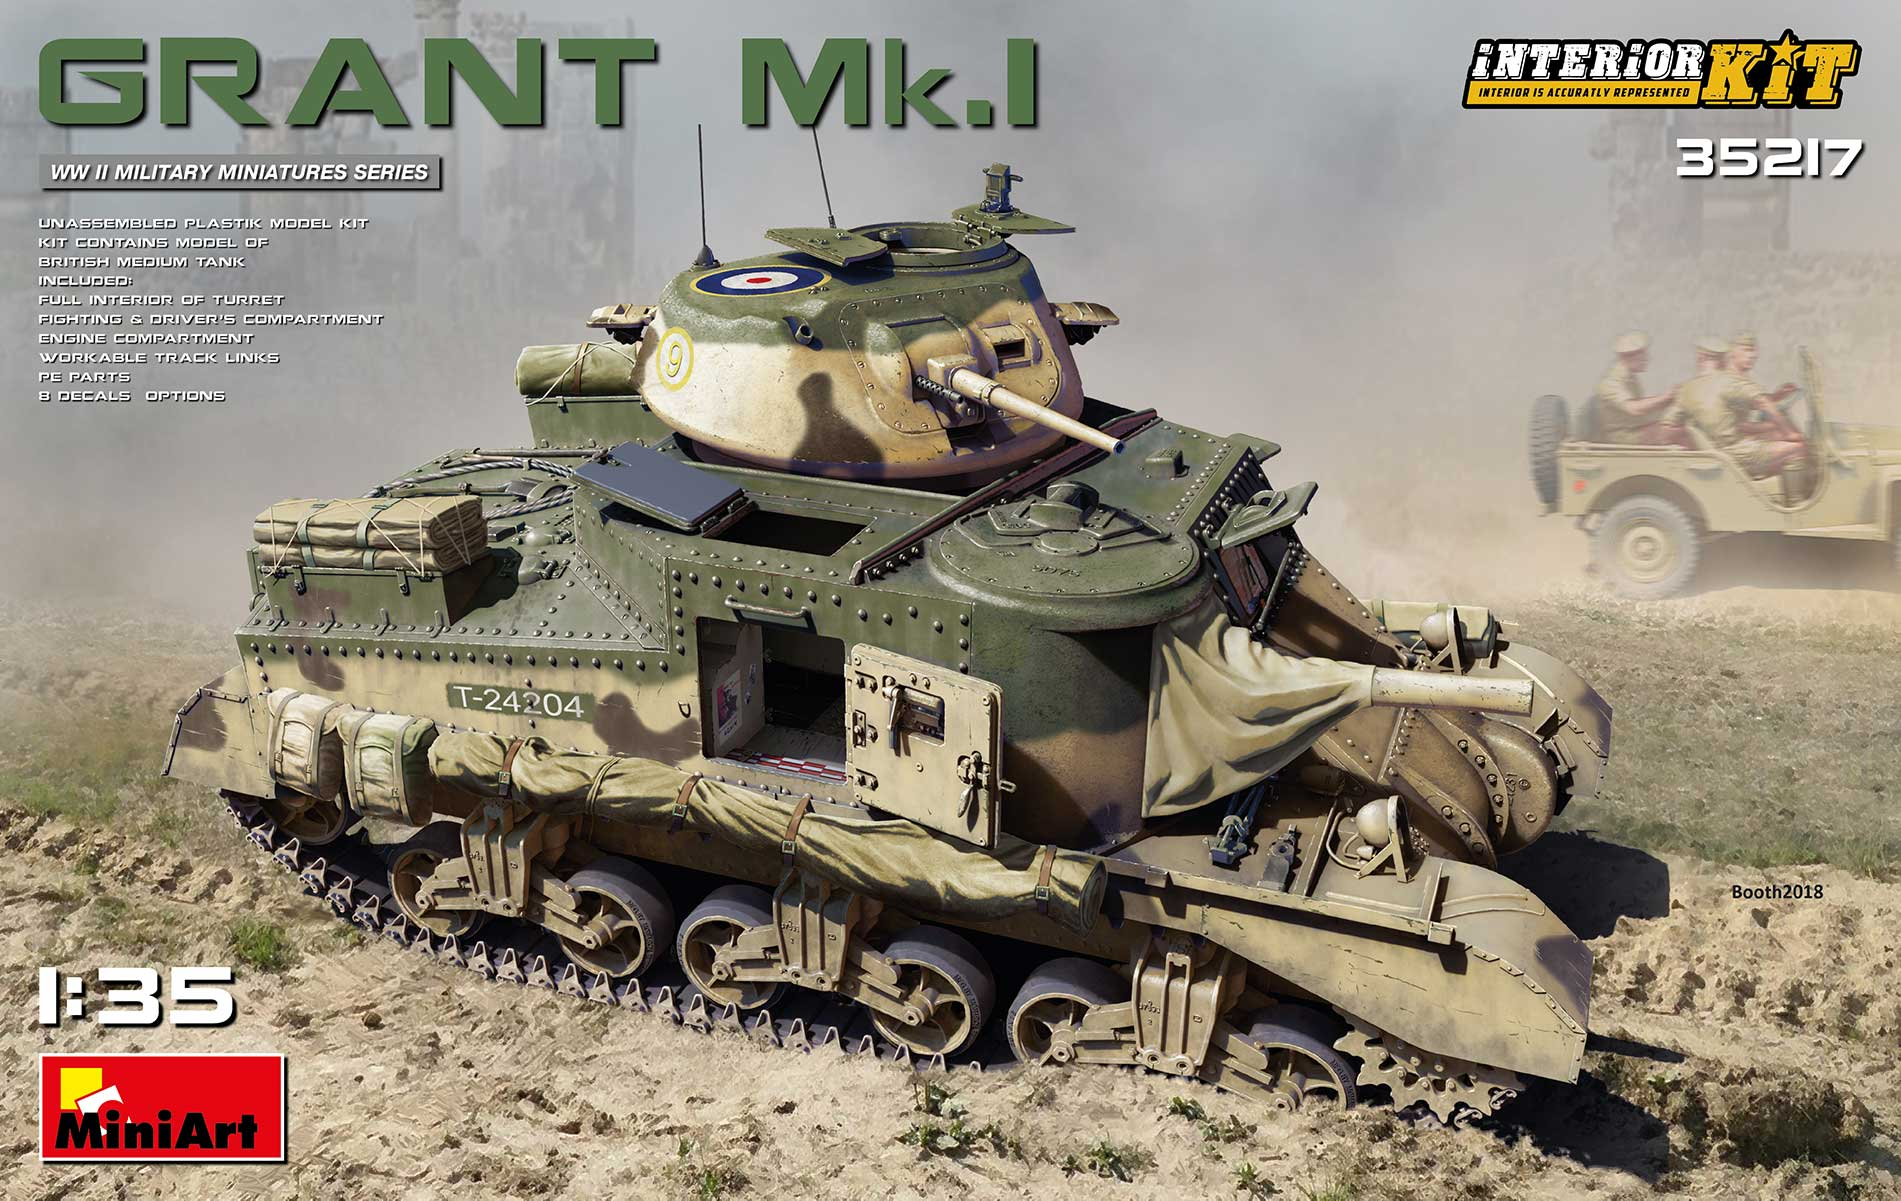 Miniart Grant Mk.I Interior Kit